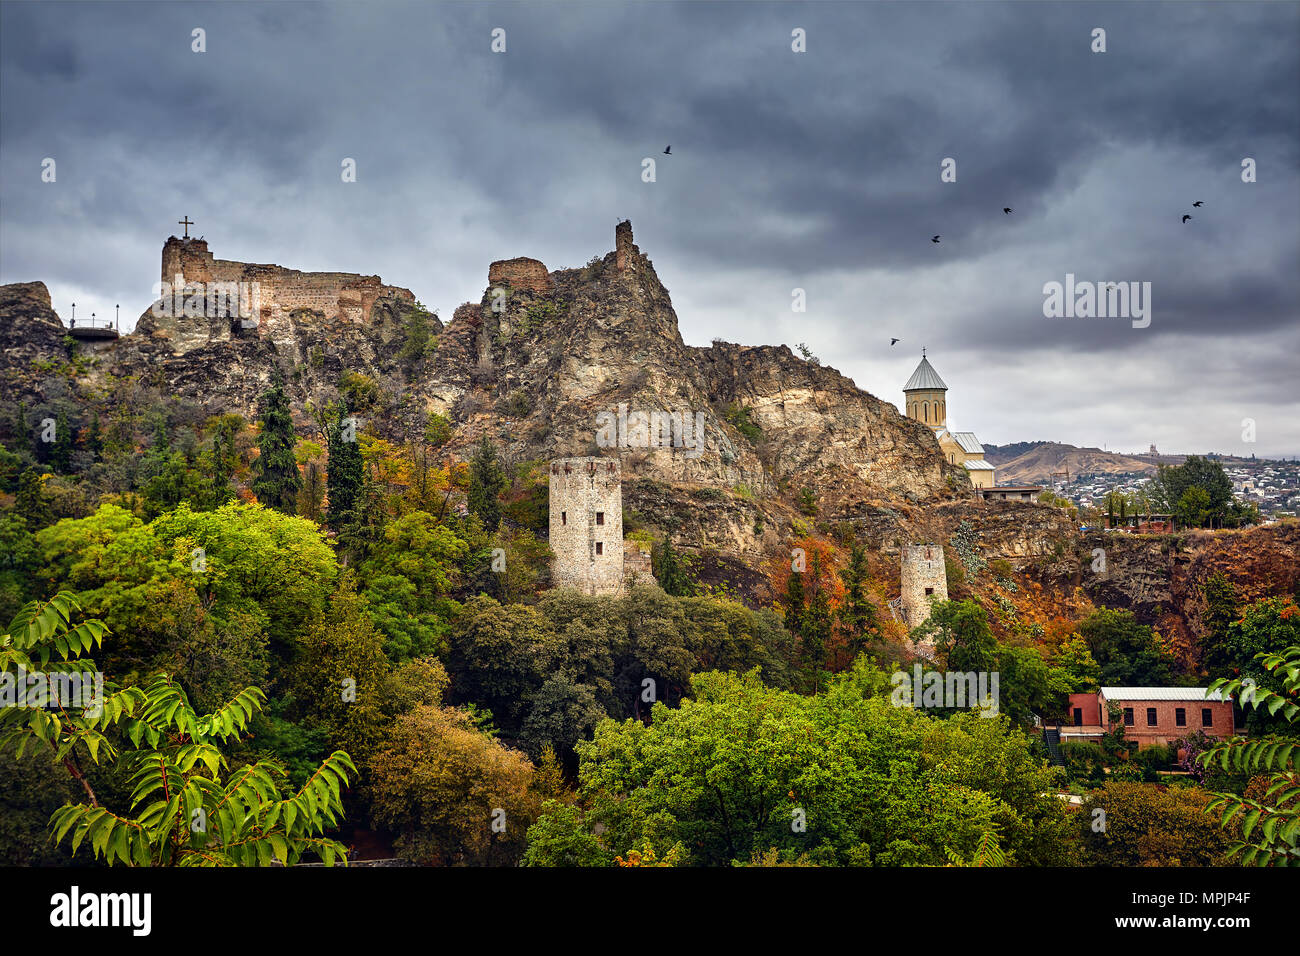 Old medieval castle Narikala at overcast cloudy sky at autumn time in Tbilisi, Georgia - Stock Image